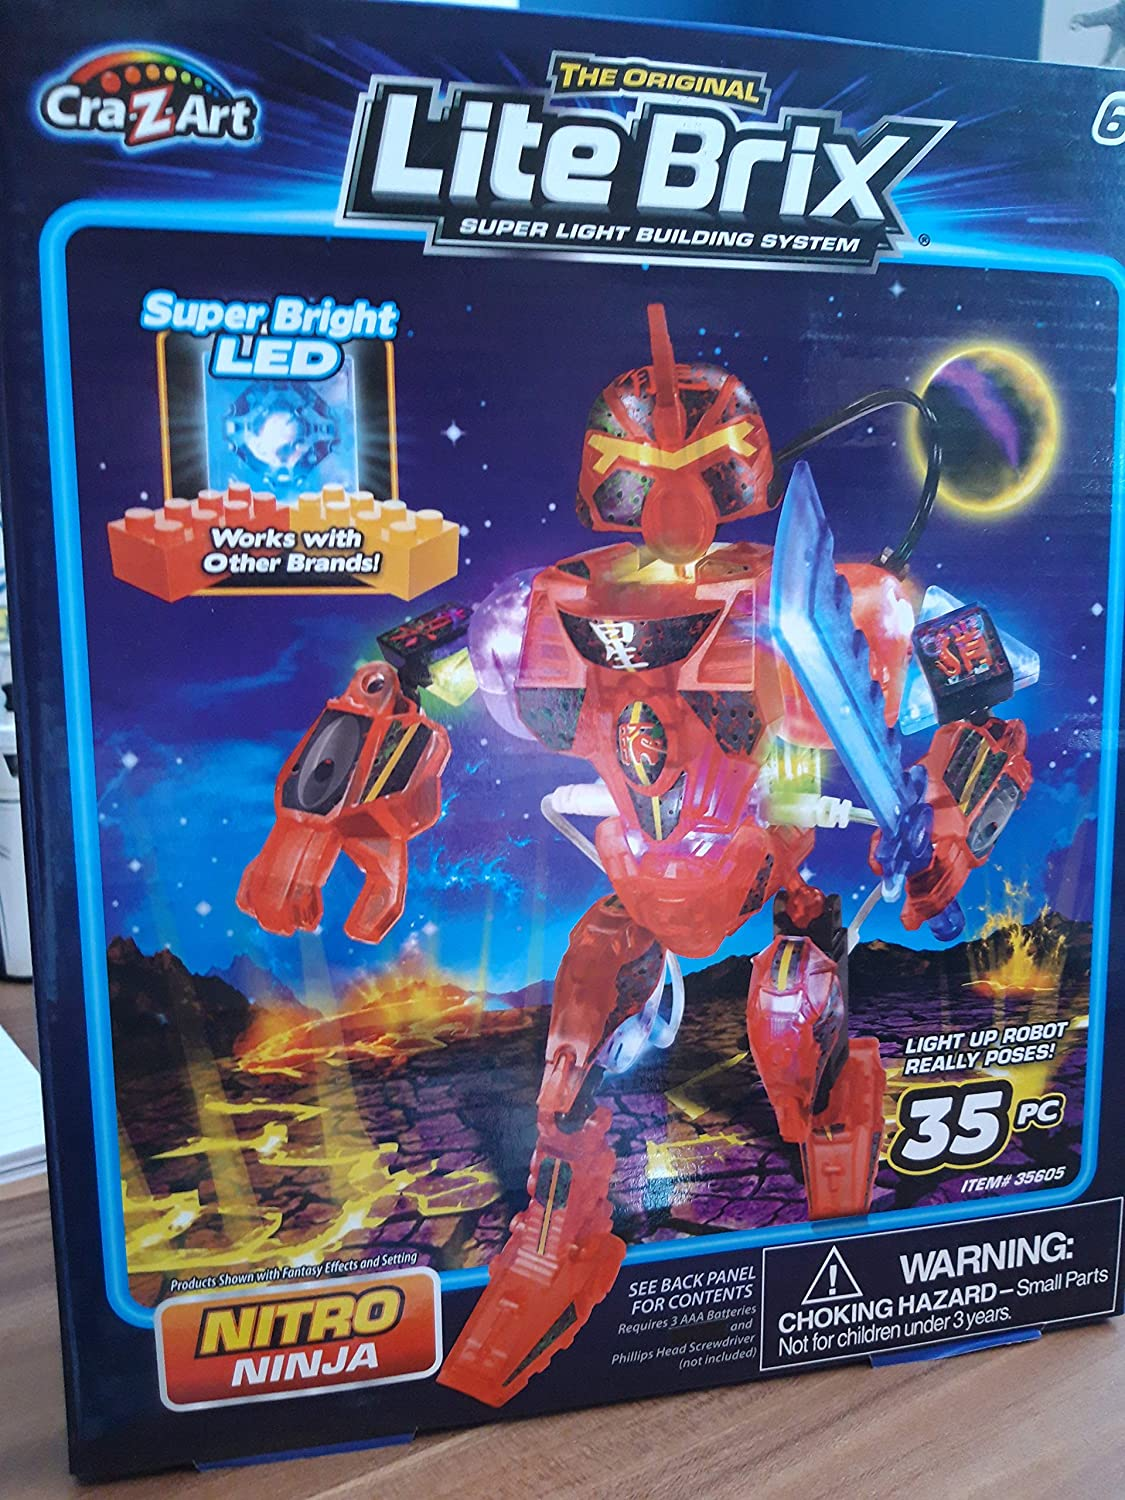 Amazon.com: Lite Brix Nitro Ninja Light Up Robot 35 Pc Super ...